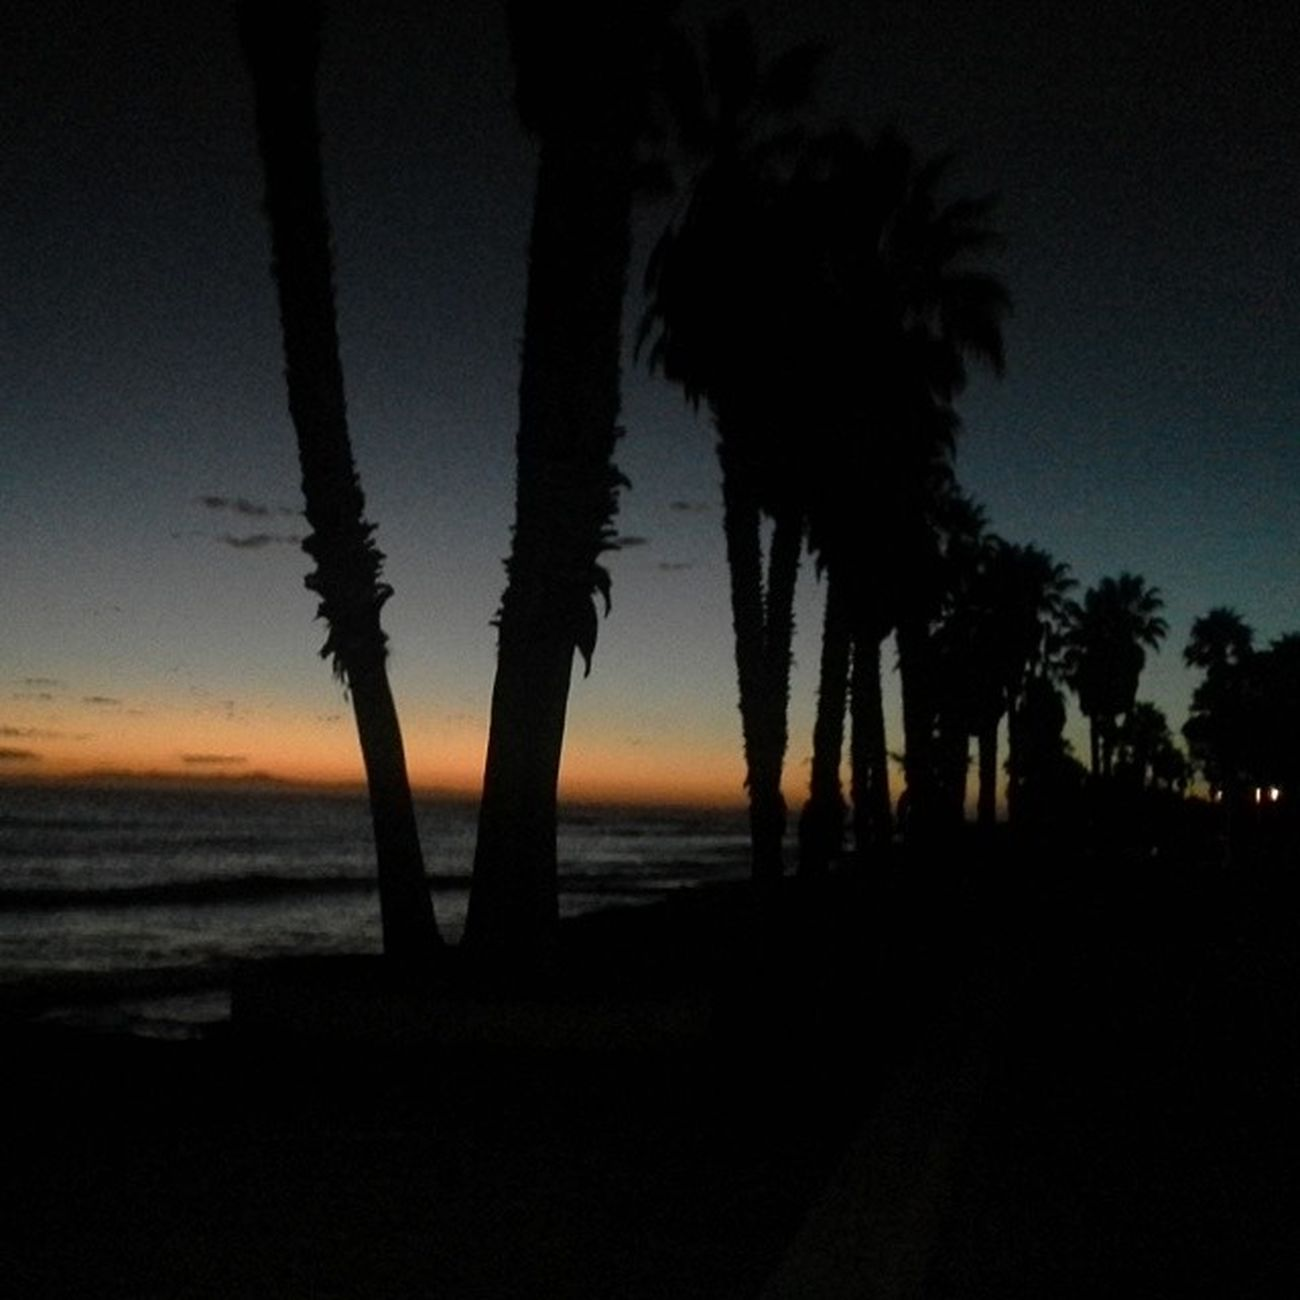 Sunsetoftheday Sunset Dayintonight Skymasters_family ca_skies californiafamousfor californiasunset allunique_pro photooftheday ventura socal peaceful smile belive